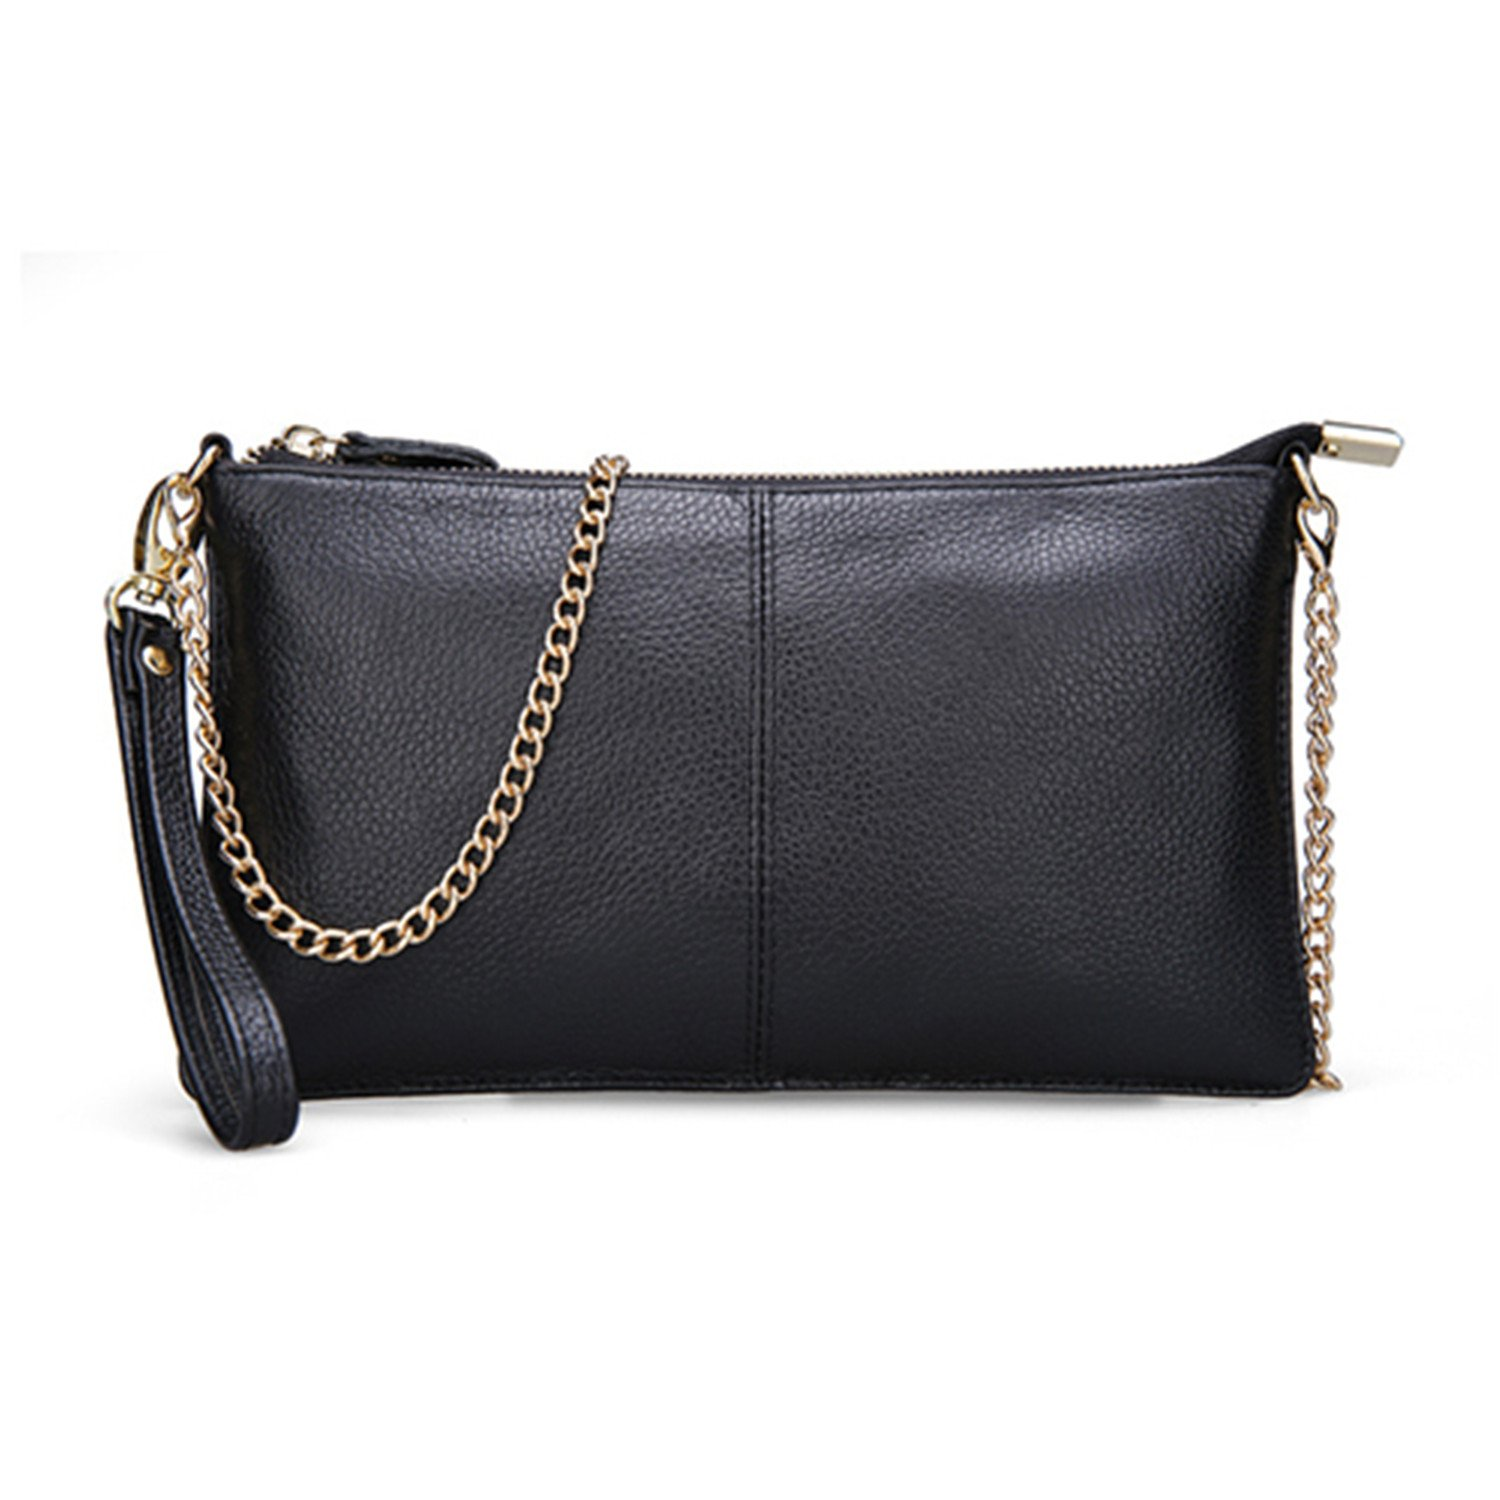 38e0a6c3213 Joseph Papa 15 Color Genuine Leather Women S Bag Designer Clutch Fashion  Women Leather Handbags Black  Handbags  Amazon.com